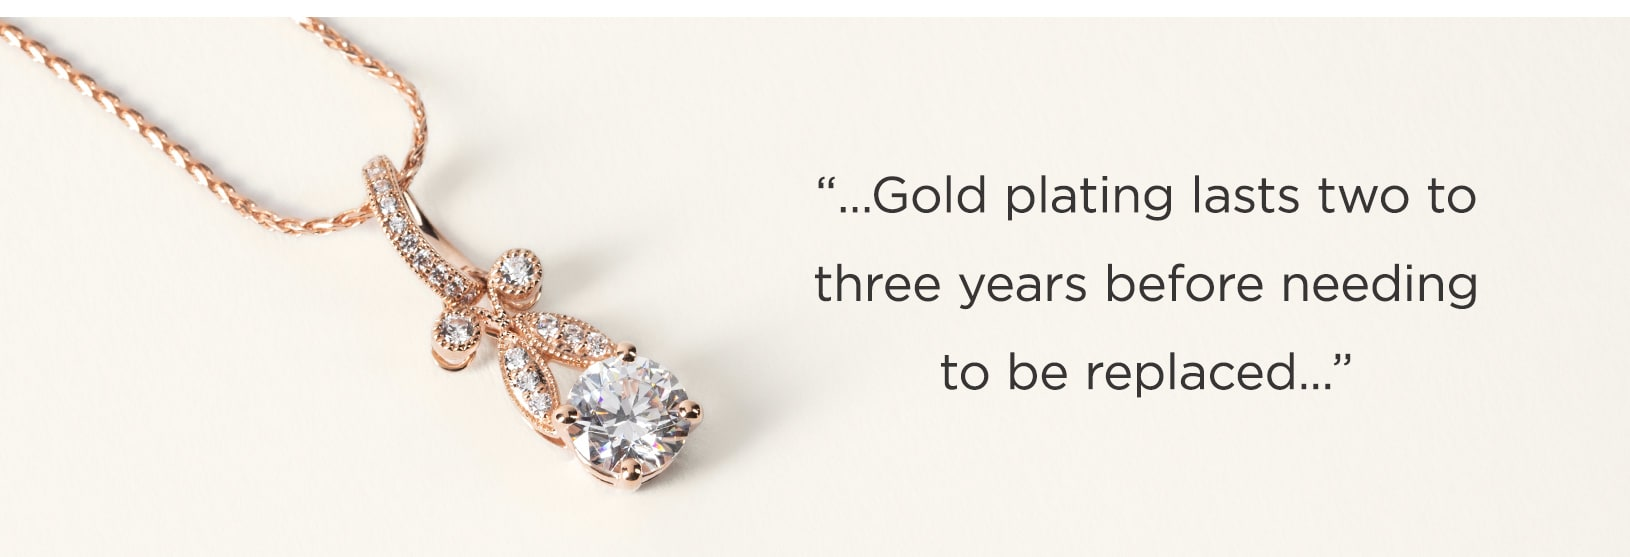 Gold plating lasts up to three years